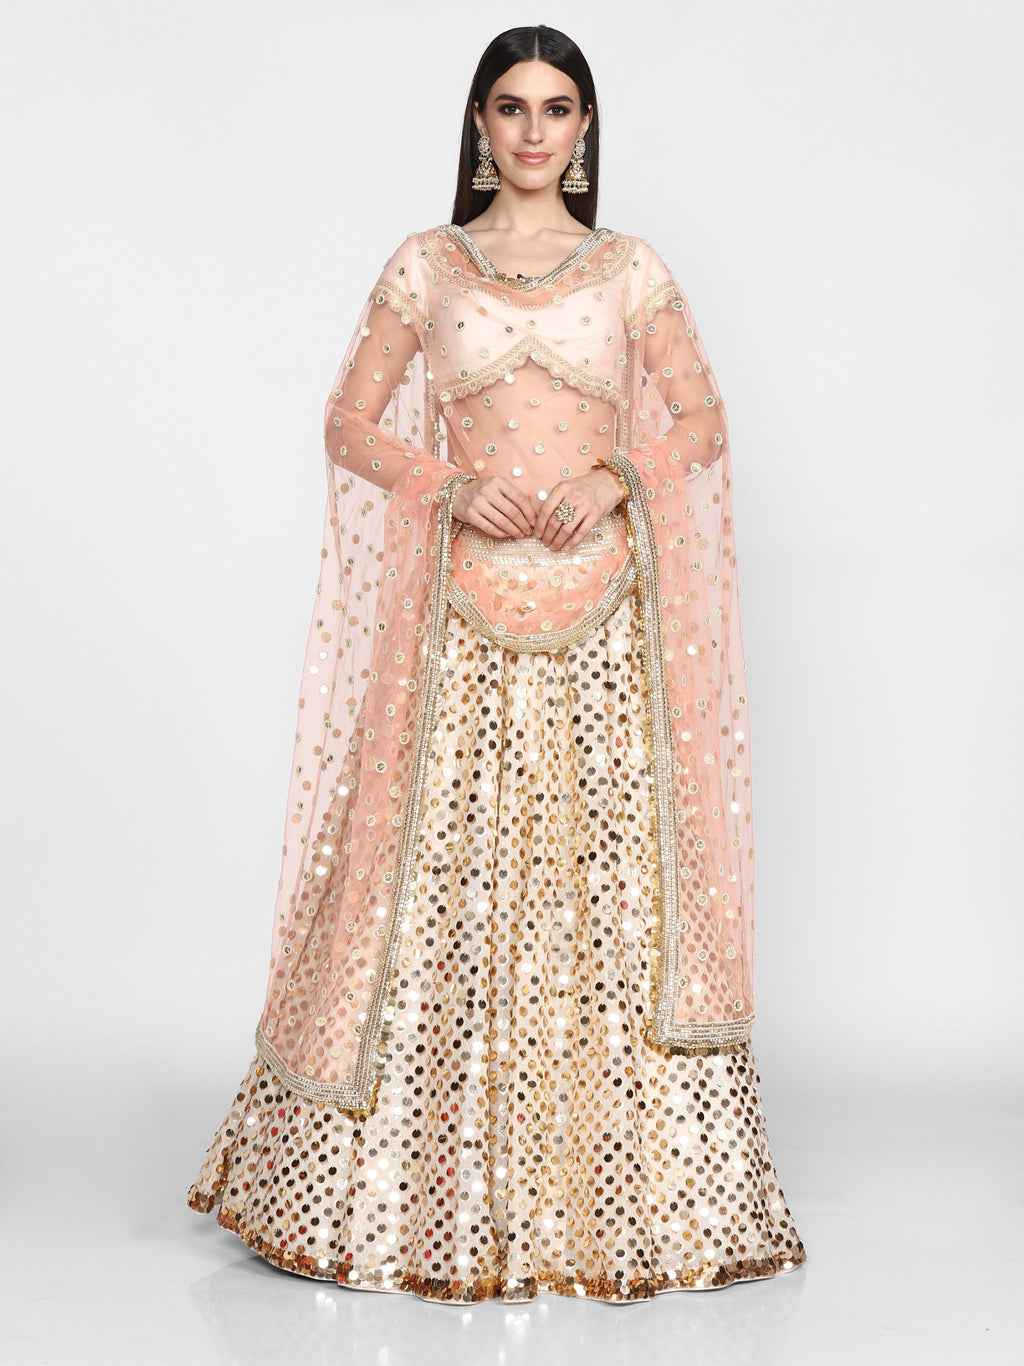 Abhinav Mishra-Off White Hand Embroidered Lehenga Set-INDIASPOPUP.COM